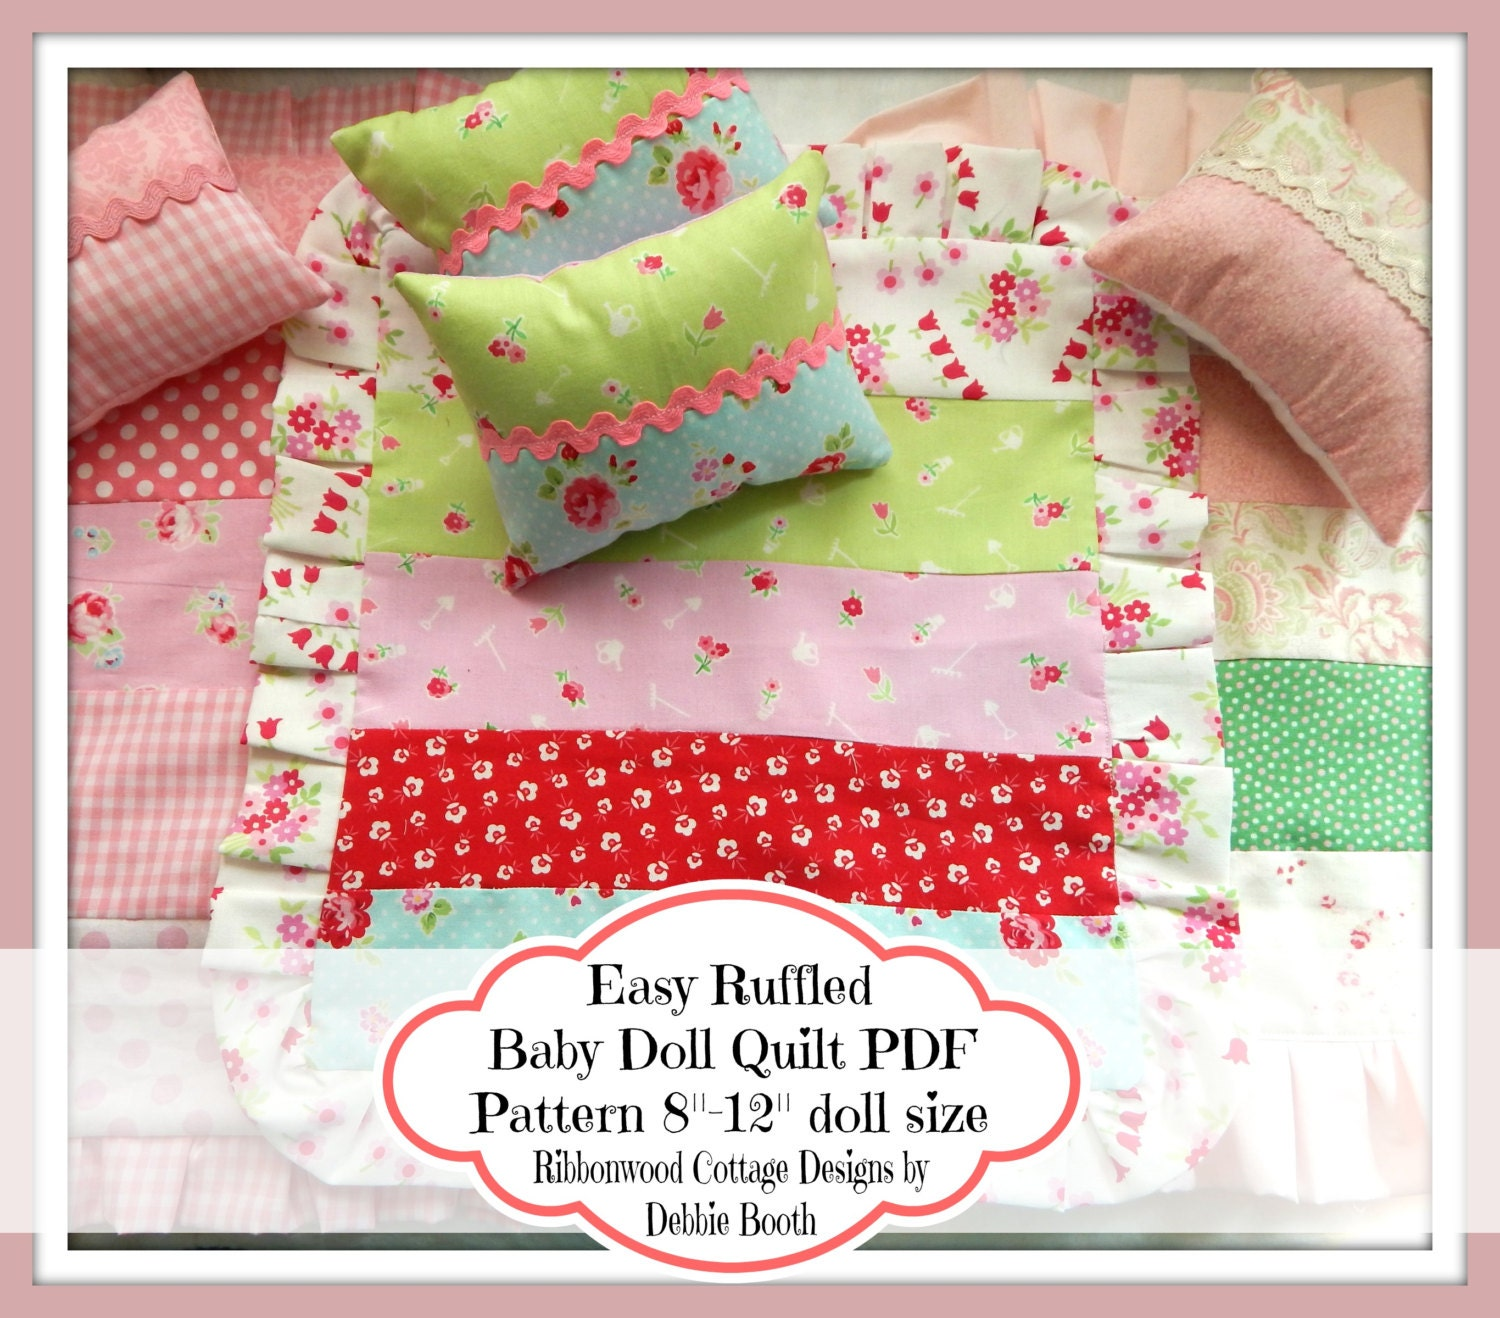 Sewing Pattern Pdf Easy Ruffled Baby Doll Quilt Pattern 8 12 Doll Size